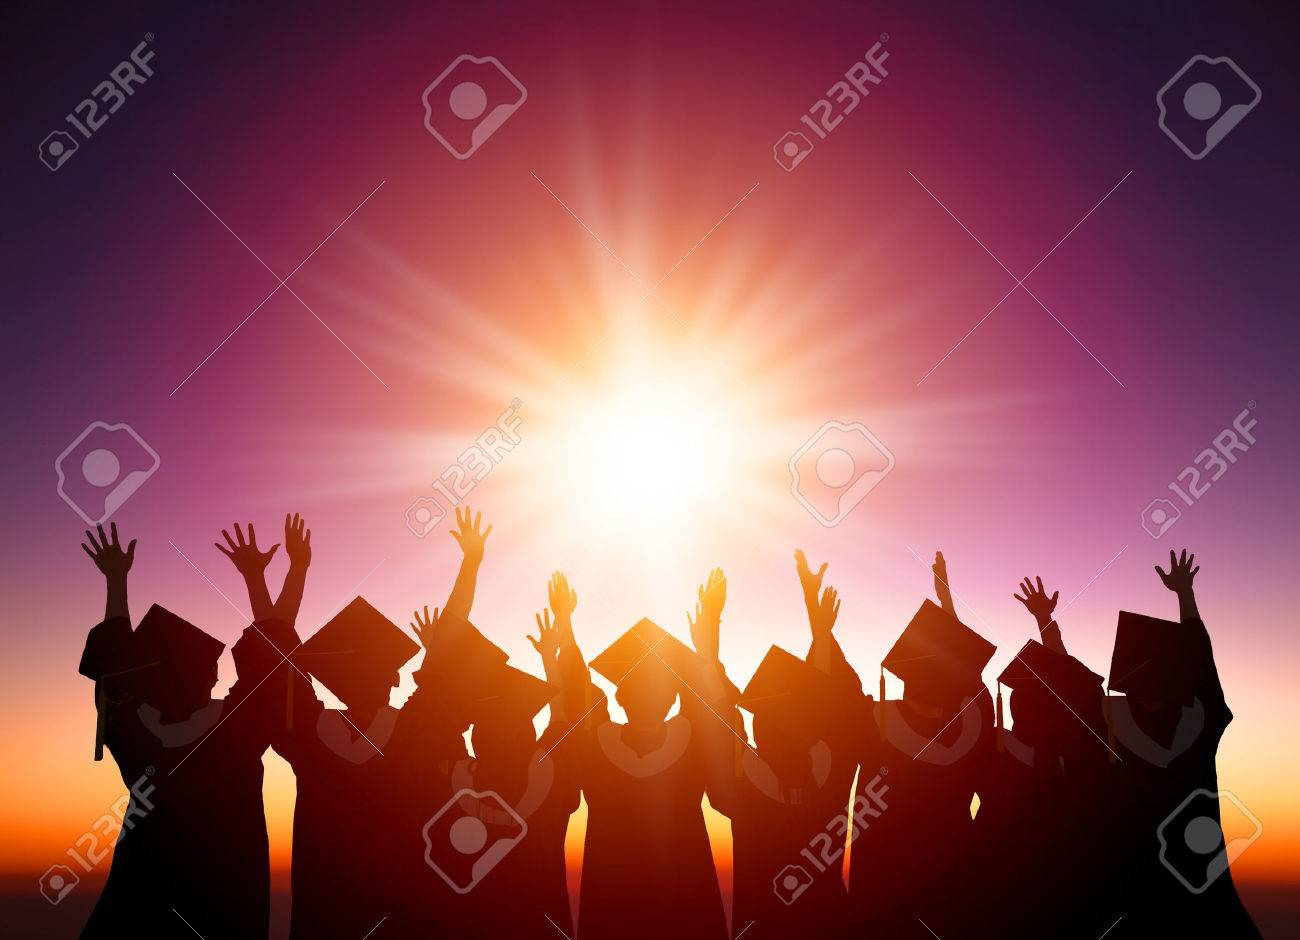 Graduation Background Stock Photos And Images - 123RF